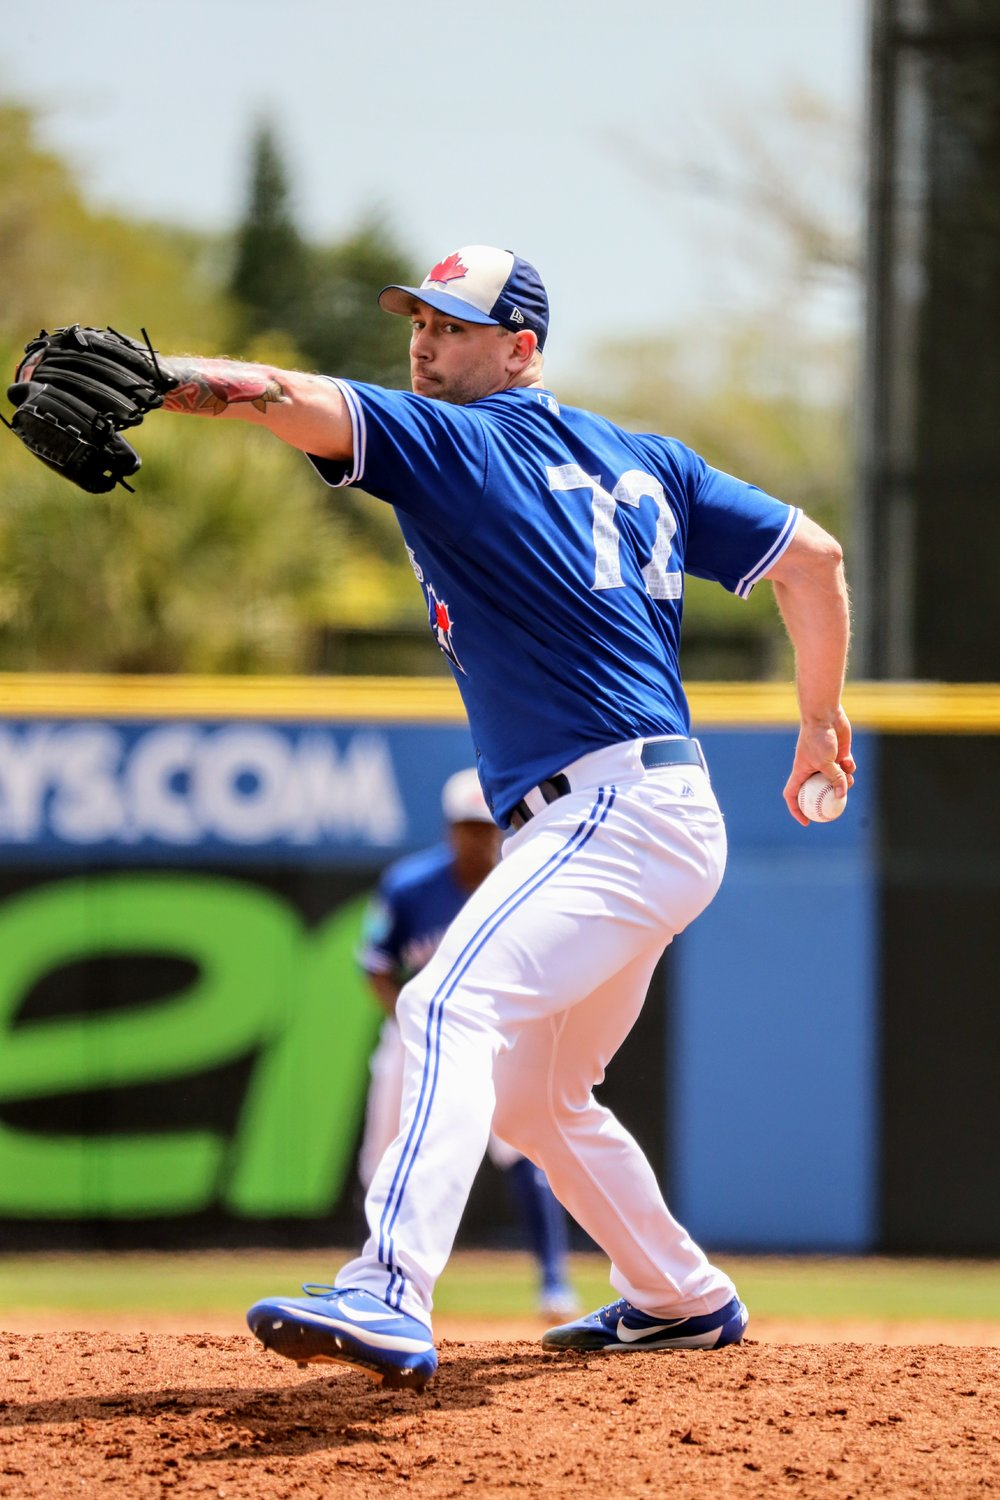 The Toronto Blue Jays dealt reliever John Axford (Port Dover, Ont.) to the Los Angeles Dodgers on Monday. Photo Credit: Amanda Fewer